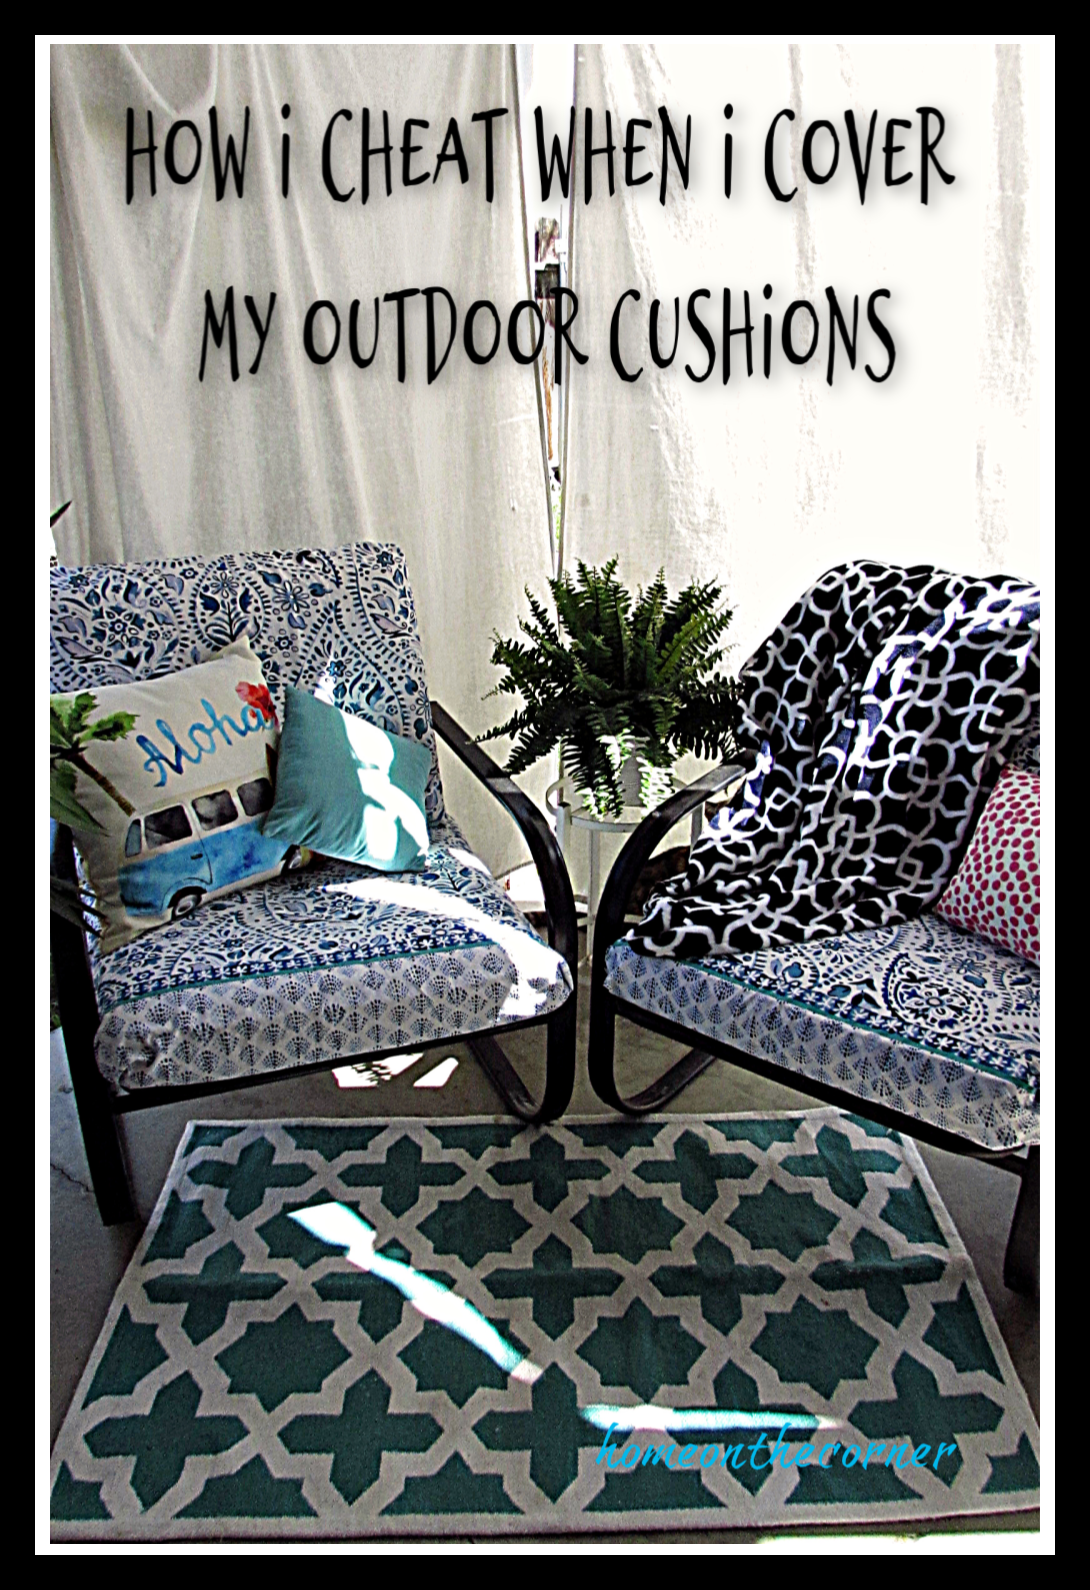 outdoor cushions title